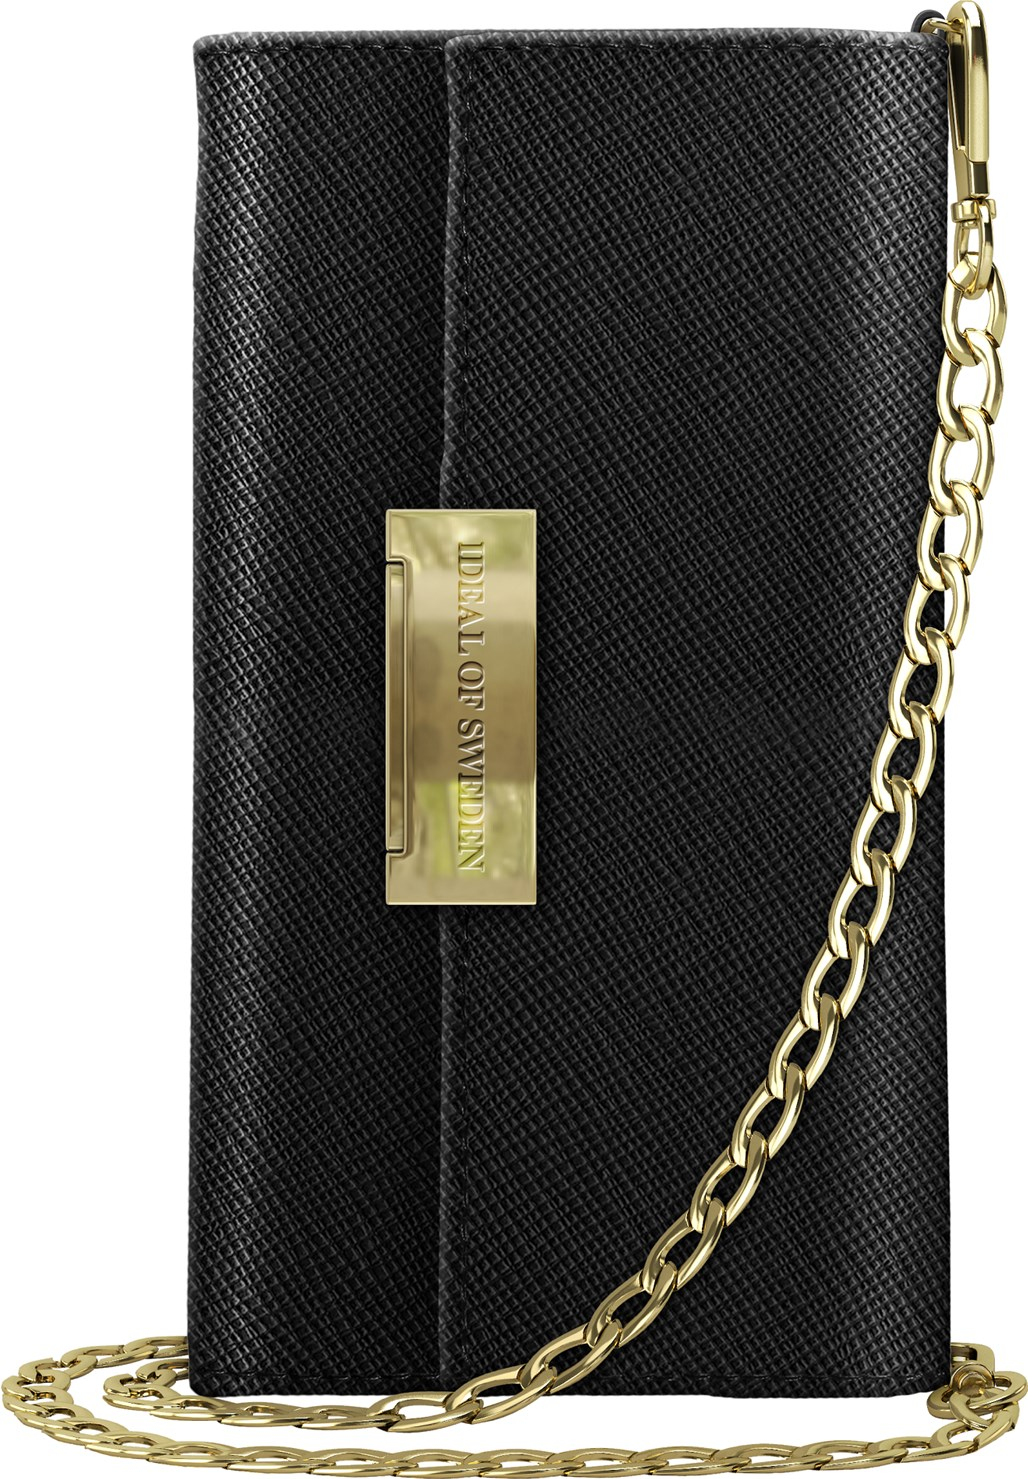 iDeal of Sweden Ideal Kensington Cross Body Clutch Iphone 6S/7/8 Plus Black